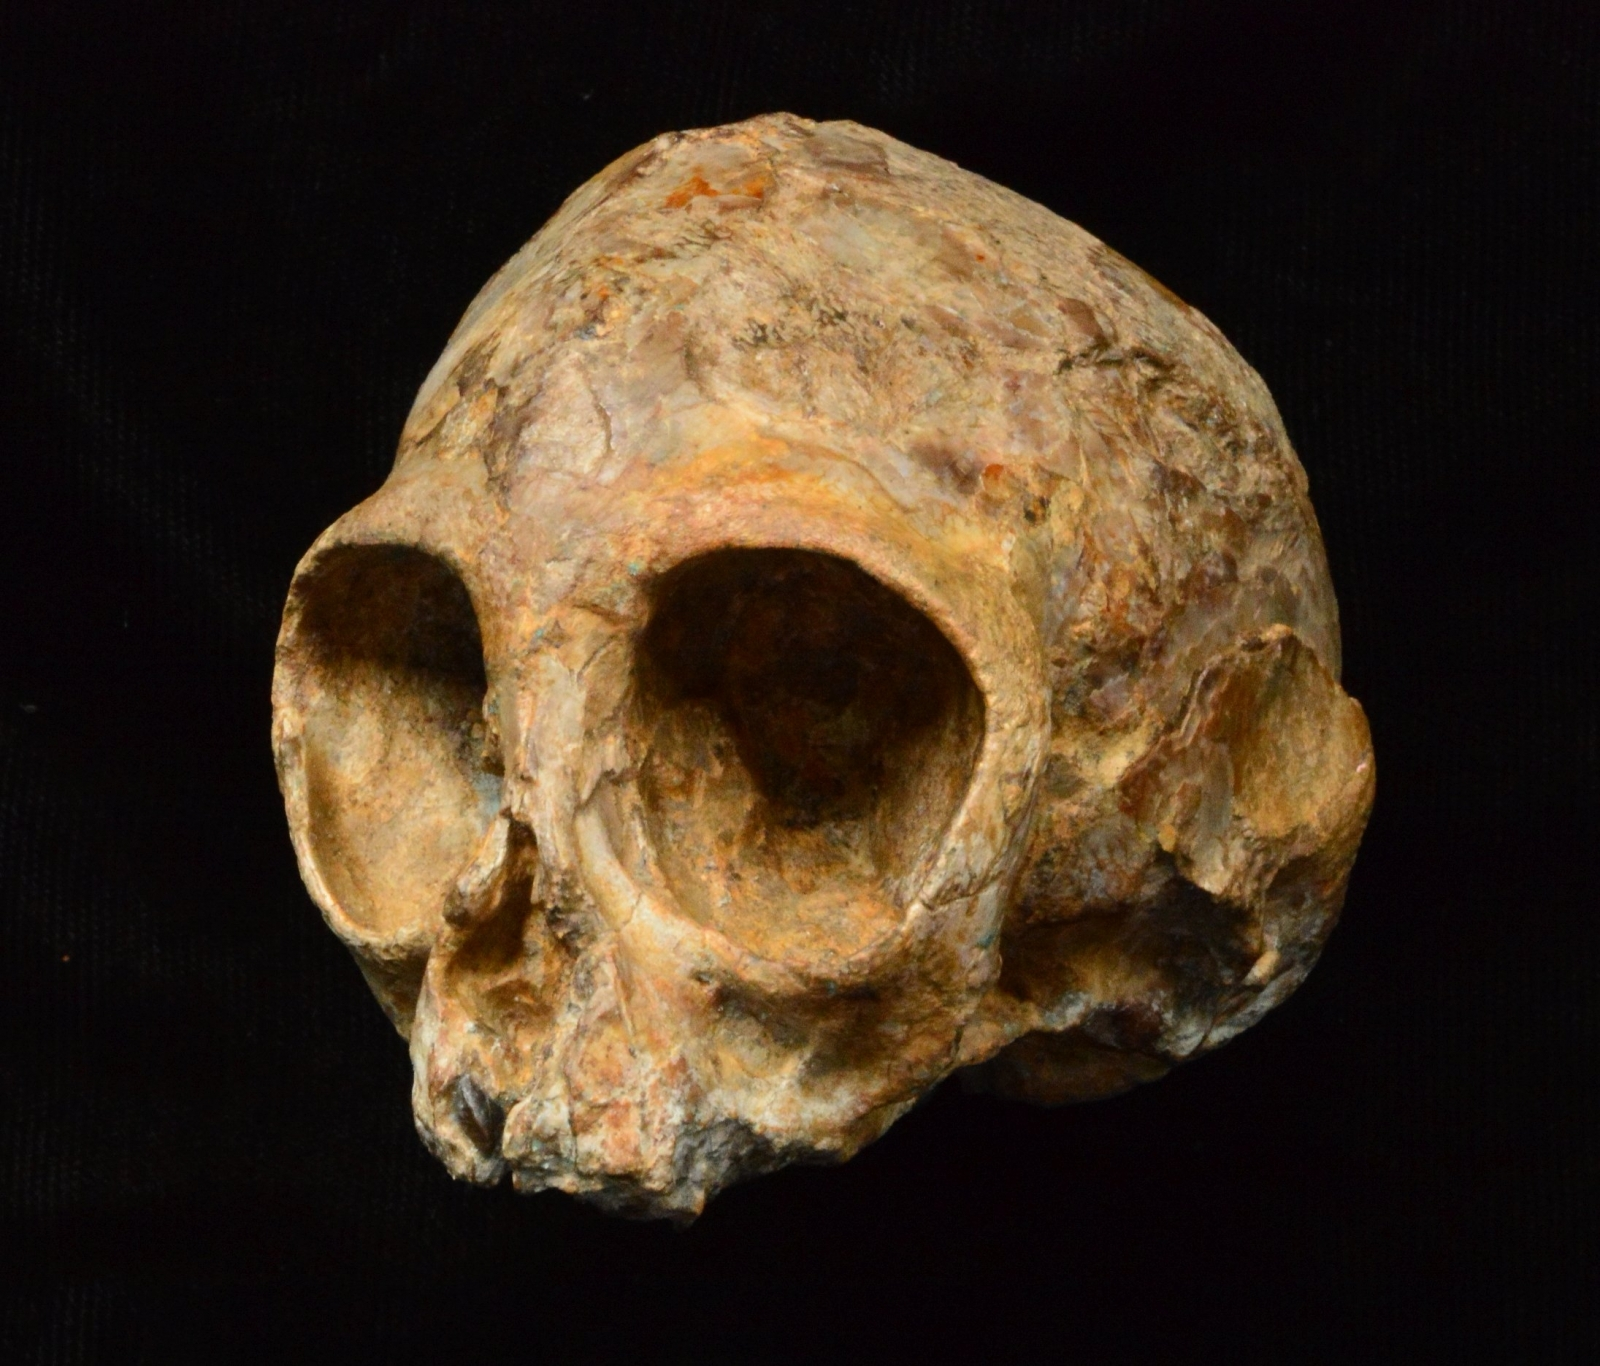 Scientists discover 13 million-year-old fossil skull of an infant ape